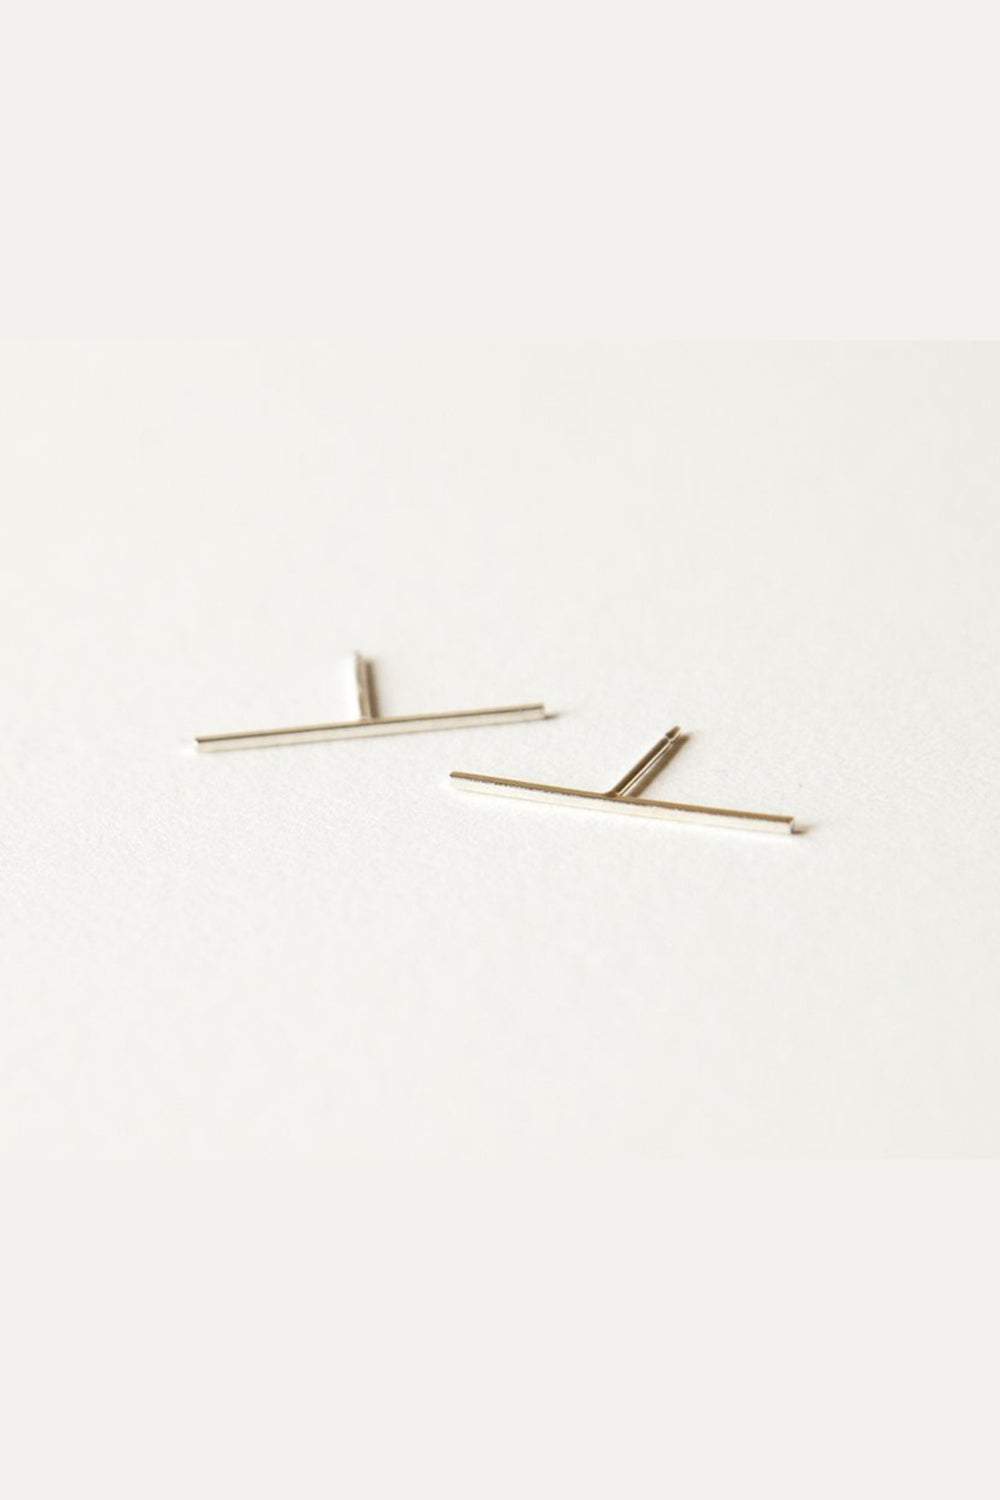 Silver Bar Earrings - 20mm